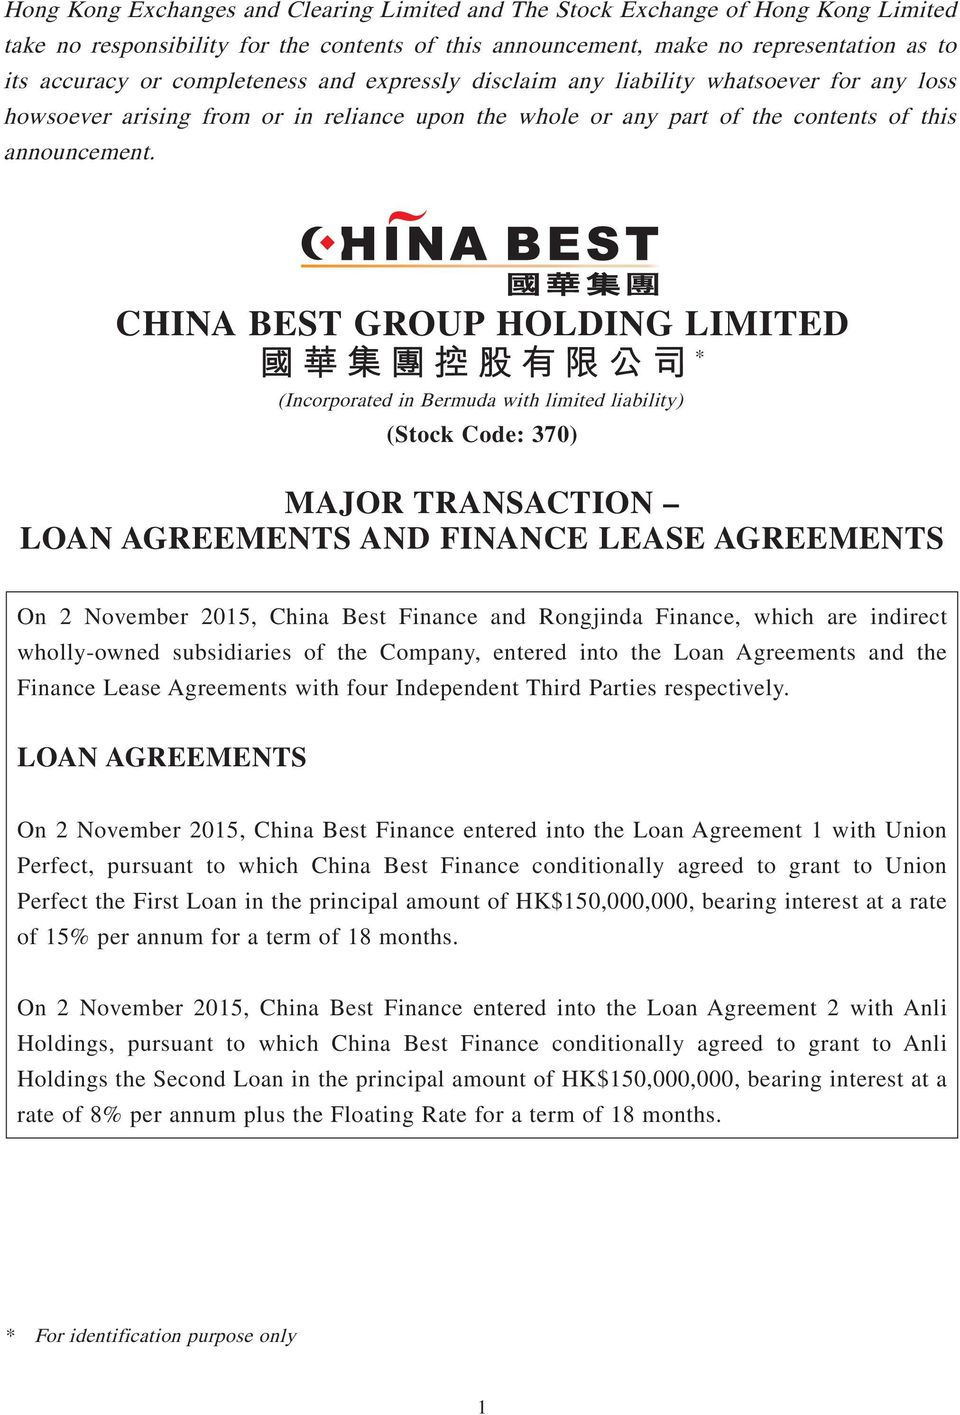 CHINA BEST GROUP HOLDING LIMITED * (Incorporated in Bermuda with limited liability) (Stock Code: 370) MAJOR TRANSACTION LOAN AGREEMENTS AND FINANCE LEASE AGREEMENTS On 2 November 2015, China Best